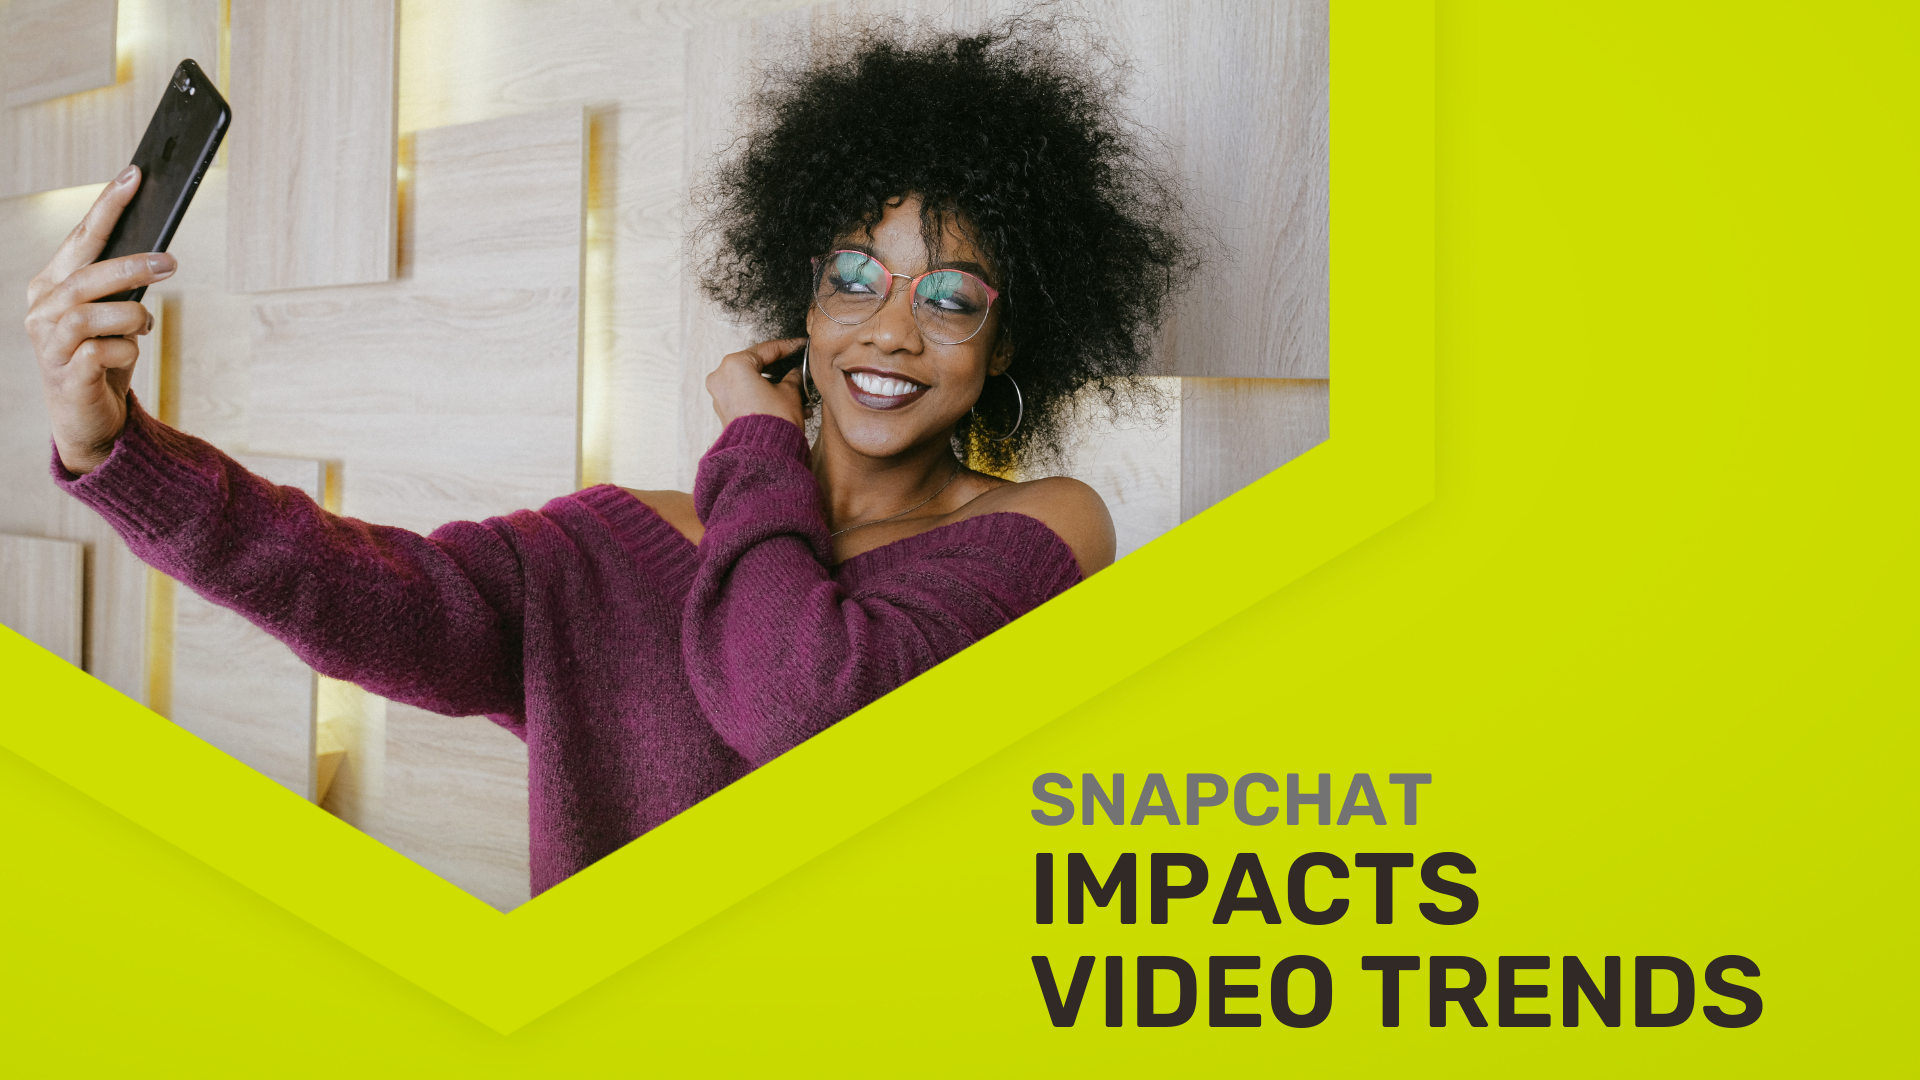 Creative marketing director testing how Snapchat impacts video marketing trends